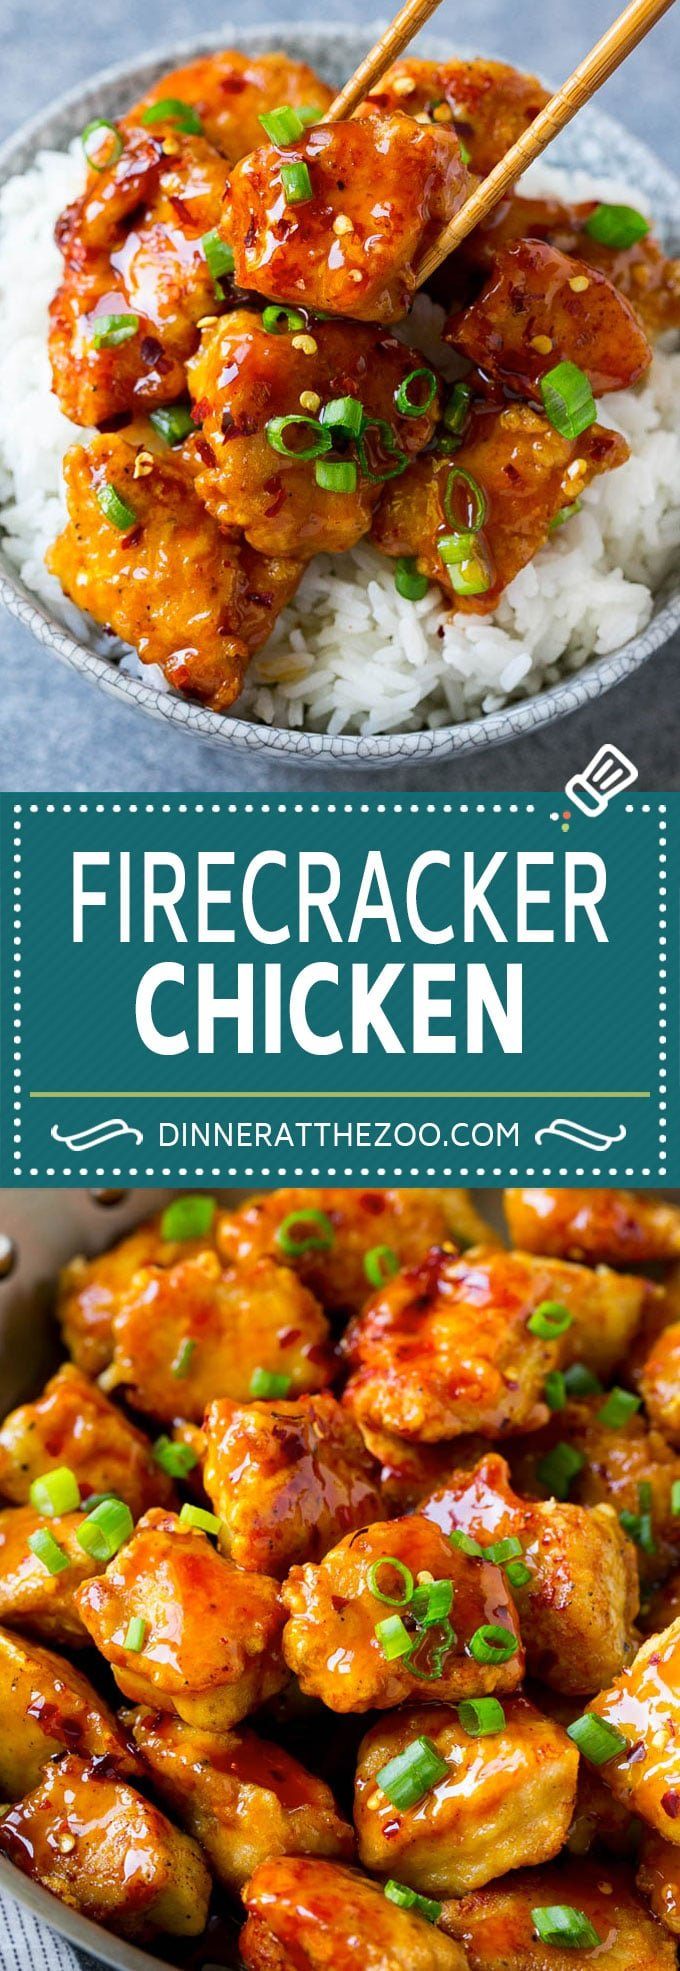 Firecracker Chicken Recipe | Asian Chicken | Spicy Chicken Recipe #chicken #stirfry #dinner #dinneratthezoo